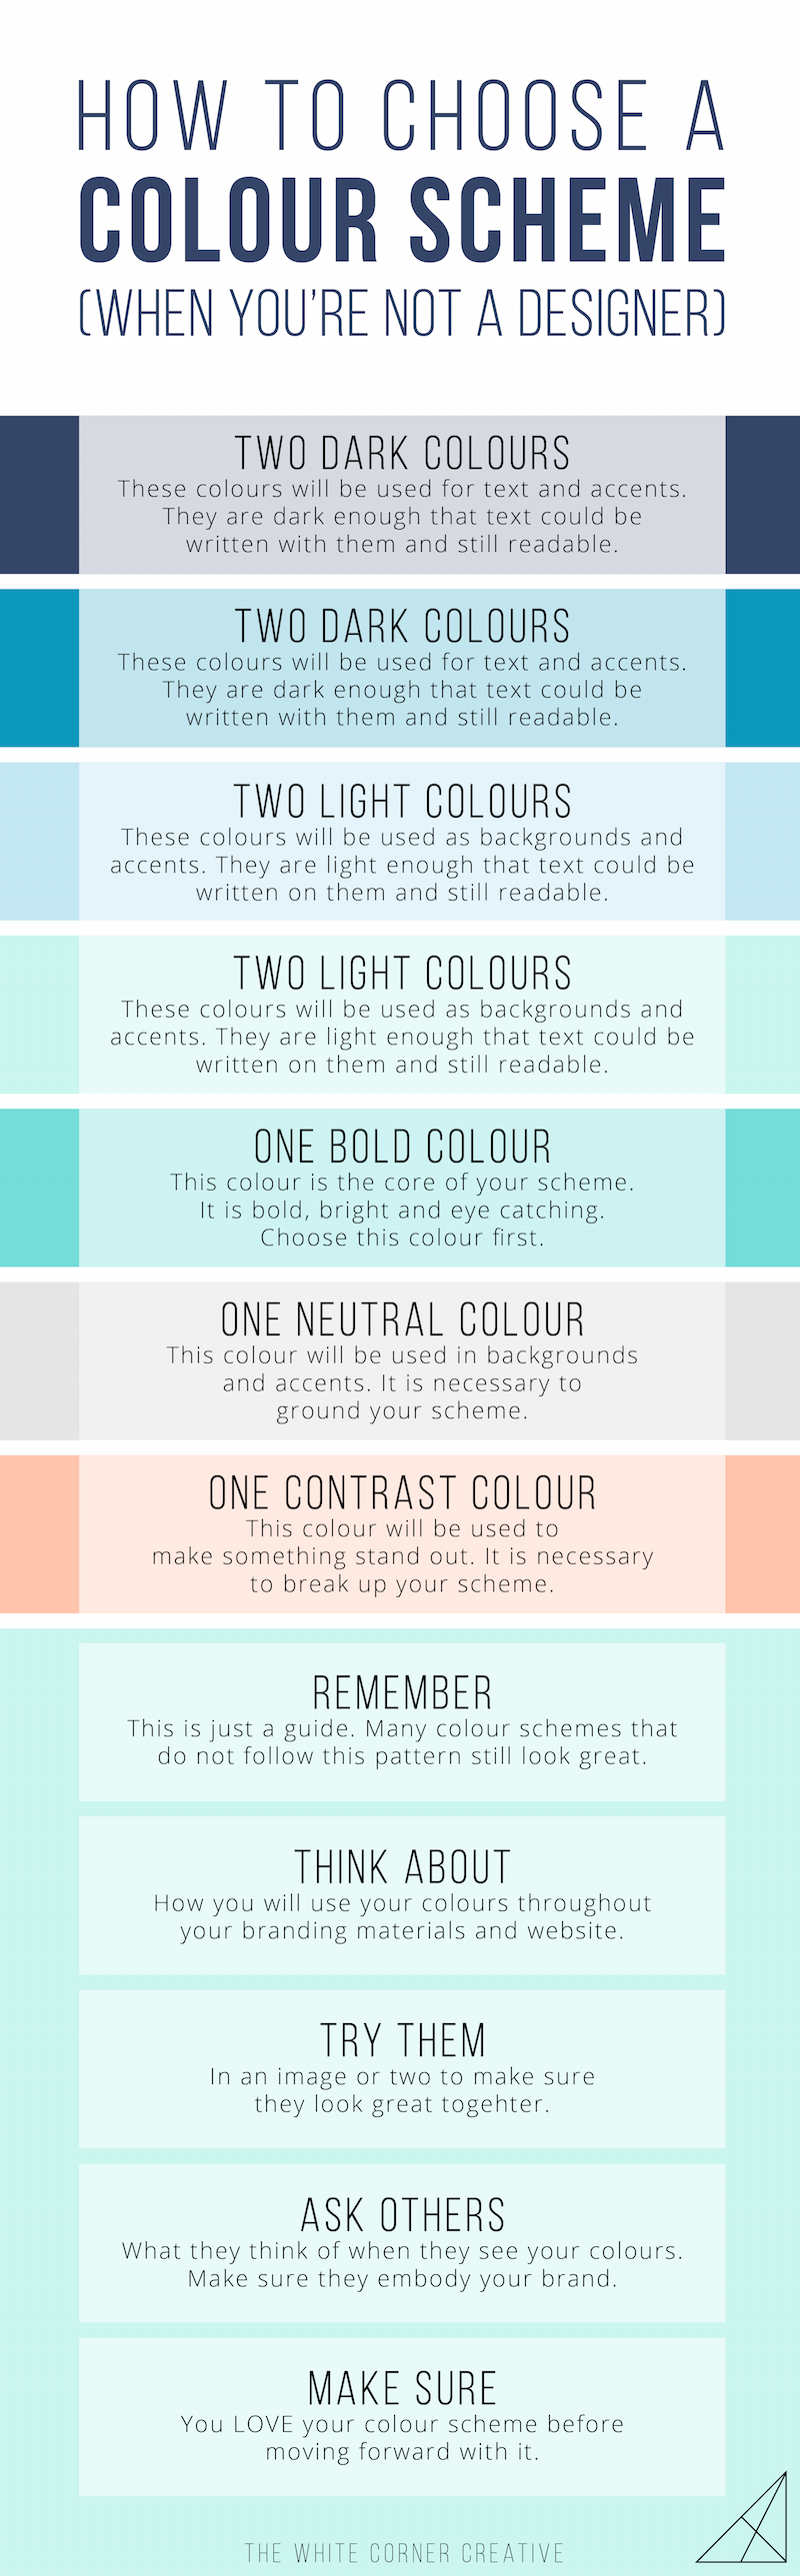 Your Colour Scheme Is The Base Of Entire Visual Brand So It S Vital That You Choose A Good One Here How To Pick Gorgeous On Own